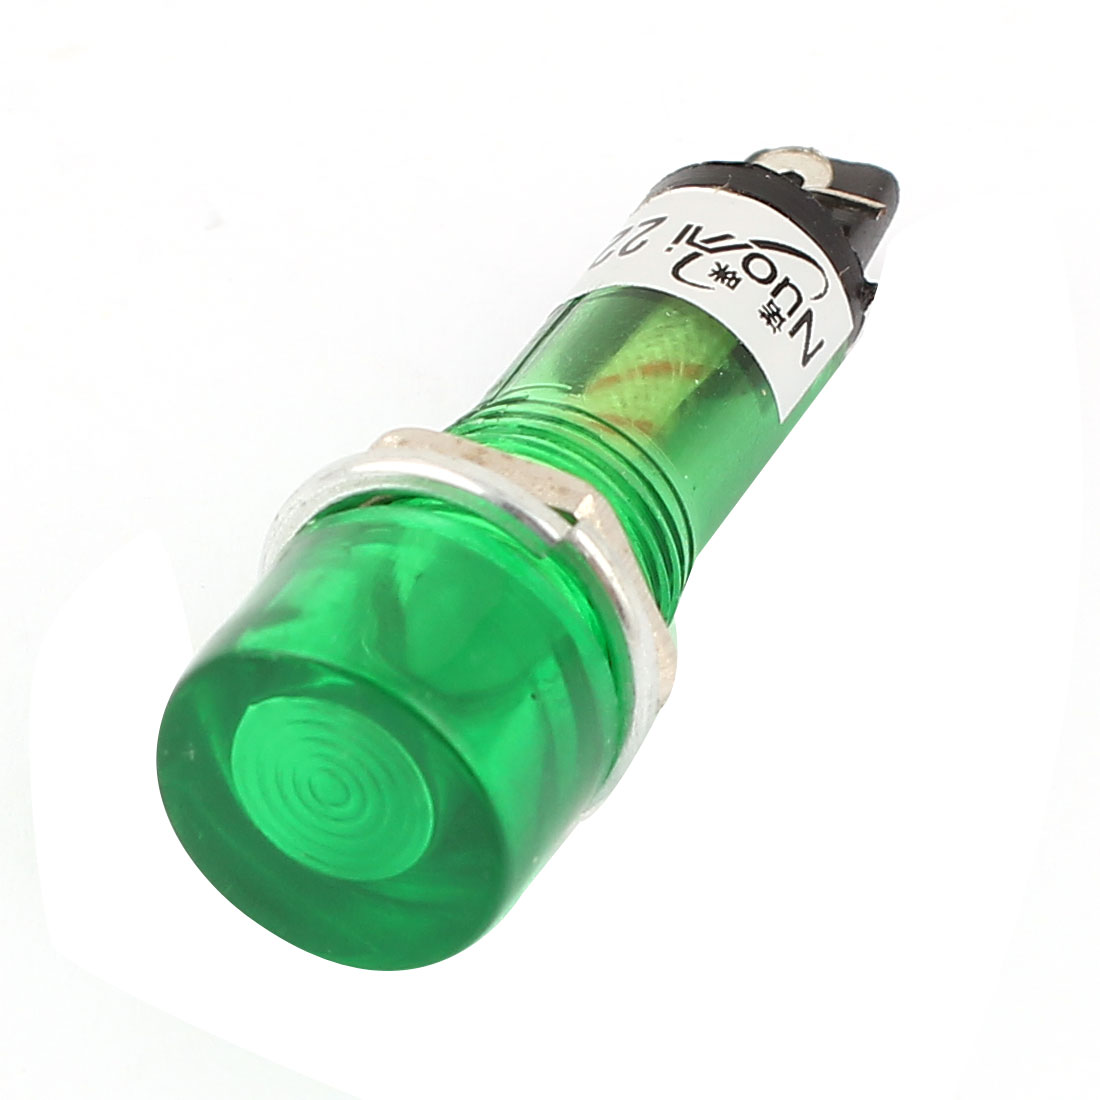 AC 220V Plastic Shell Green Signal Pilot Lamp Mini Indicator Light